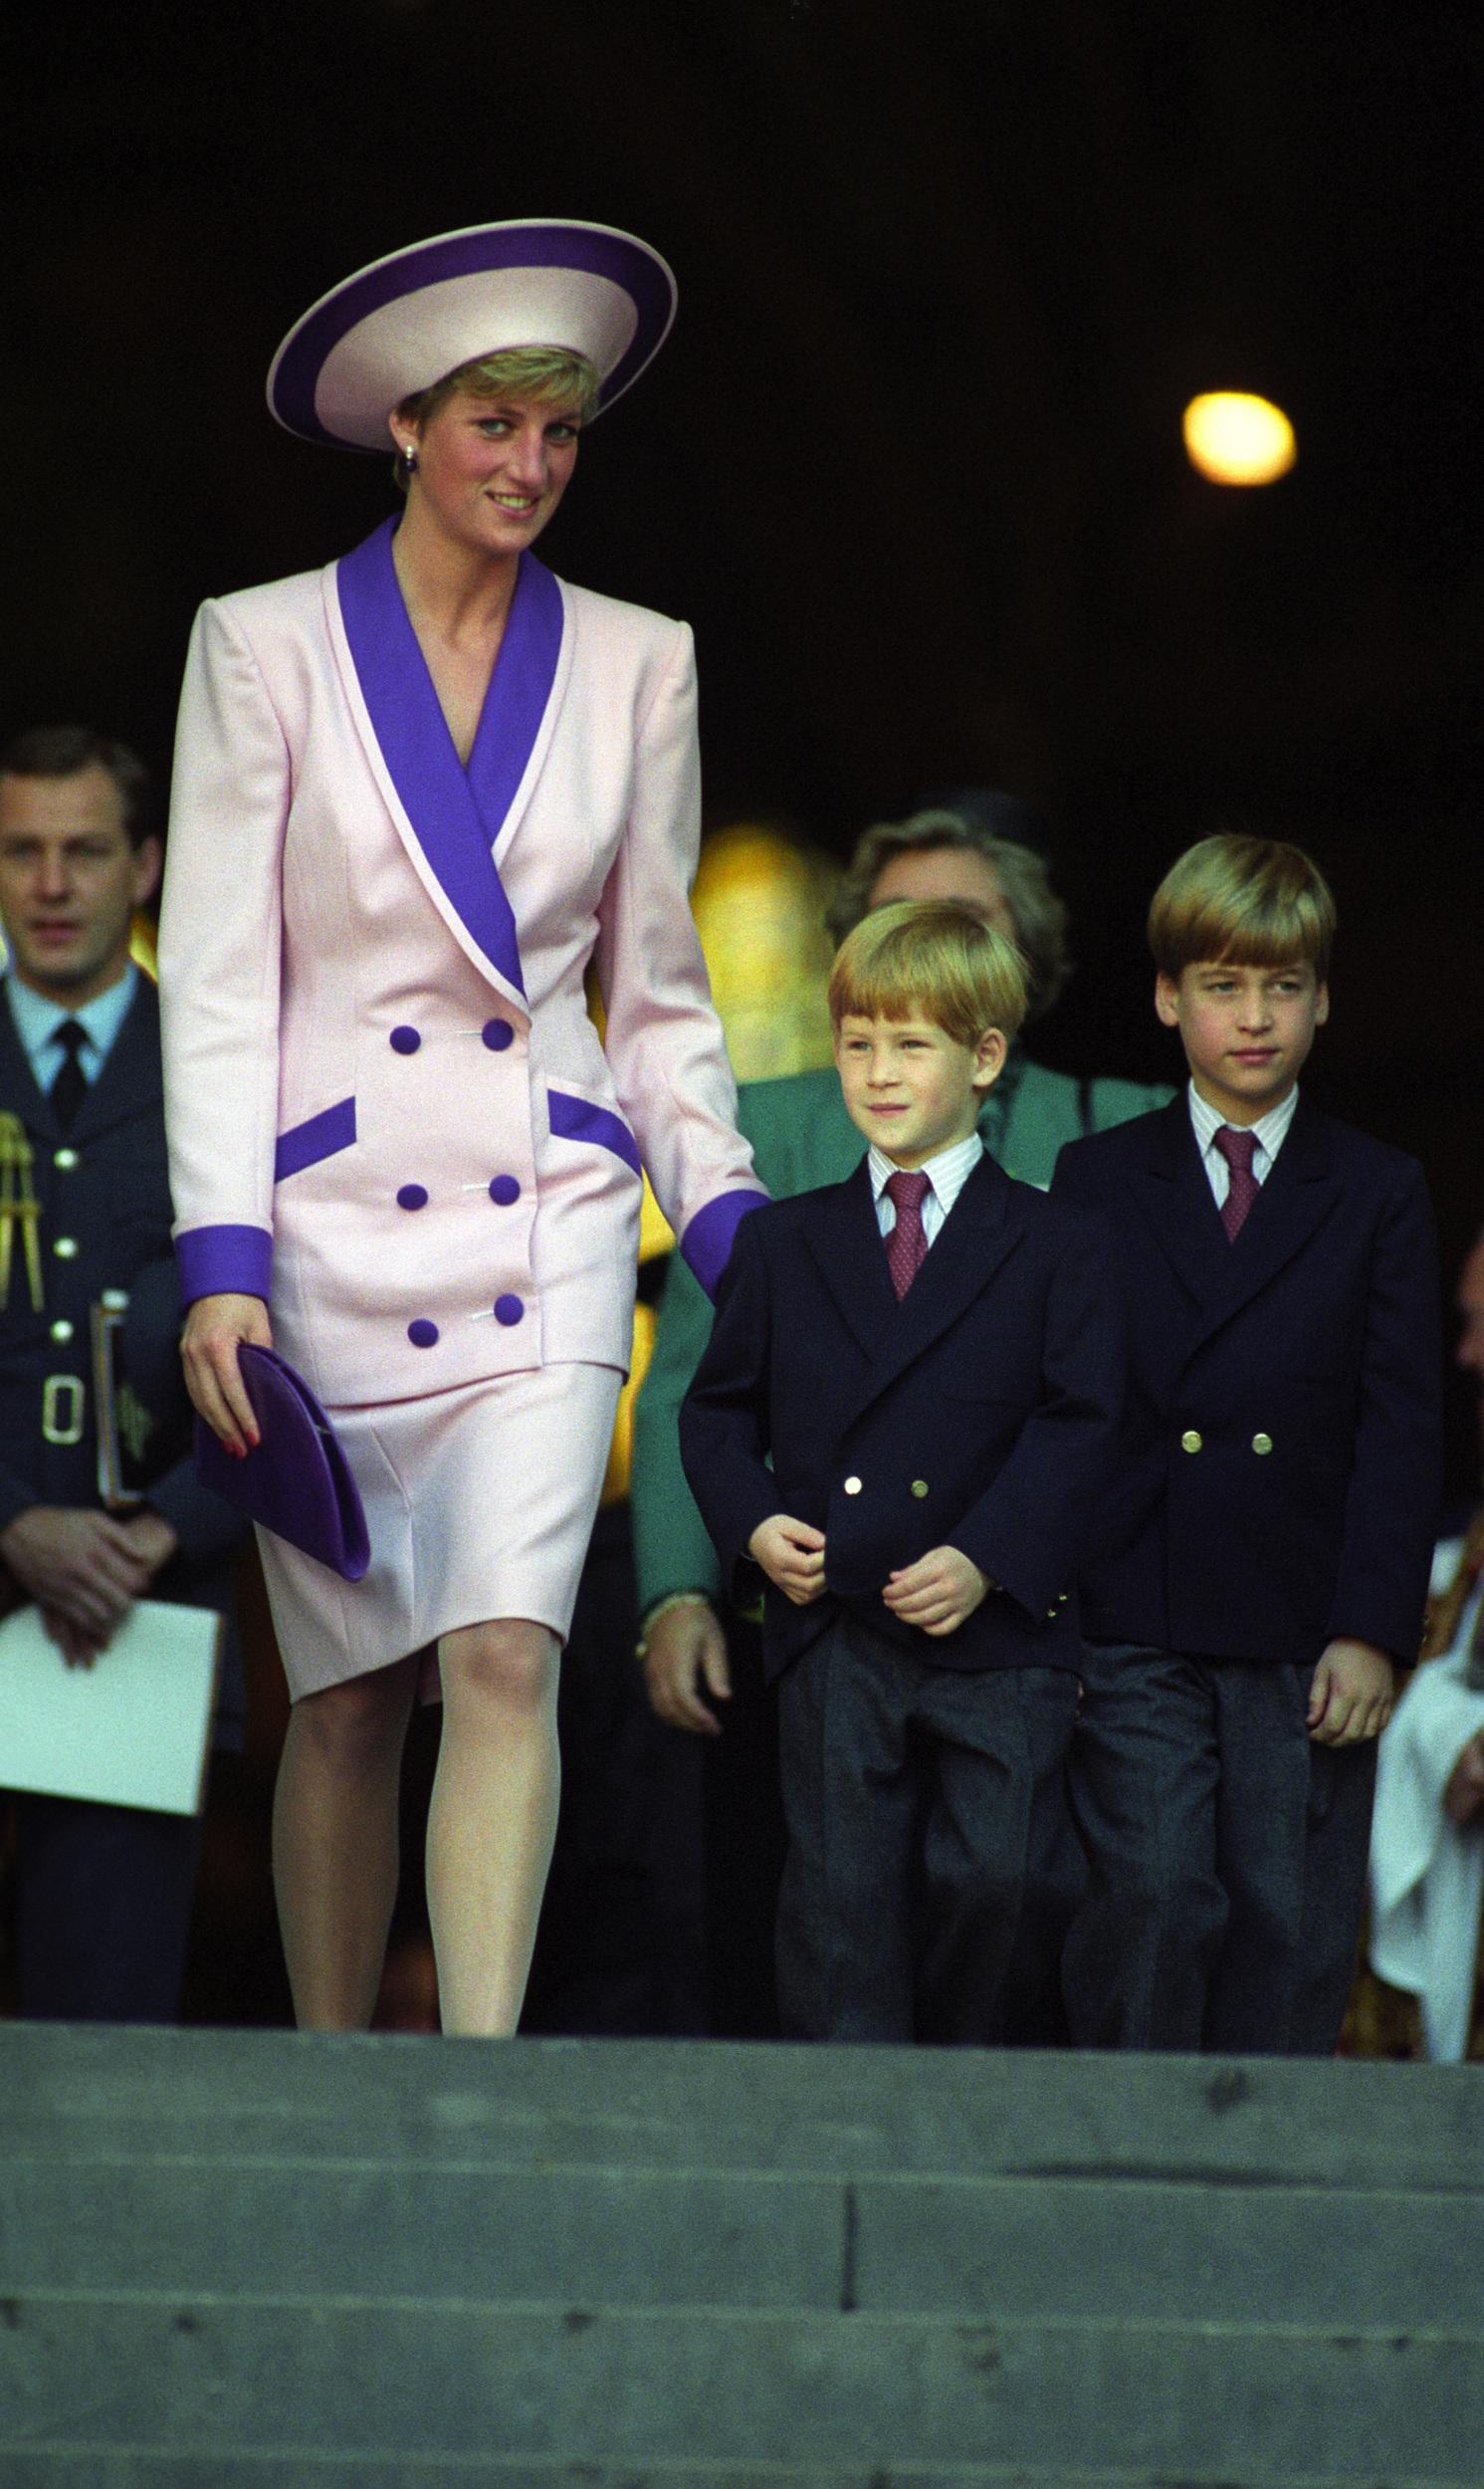 Diana, The Princess of Wales, accompanied by her children, Prince William (r) and Prince Harry, attend a service at St Paul's Cathedral to commemorate the 50th anniversary of the Blitz.   (Photo by Rebecca Naden - PA Images/PA Images via Getty Images)